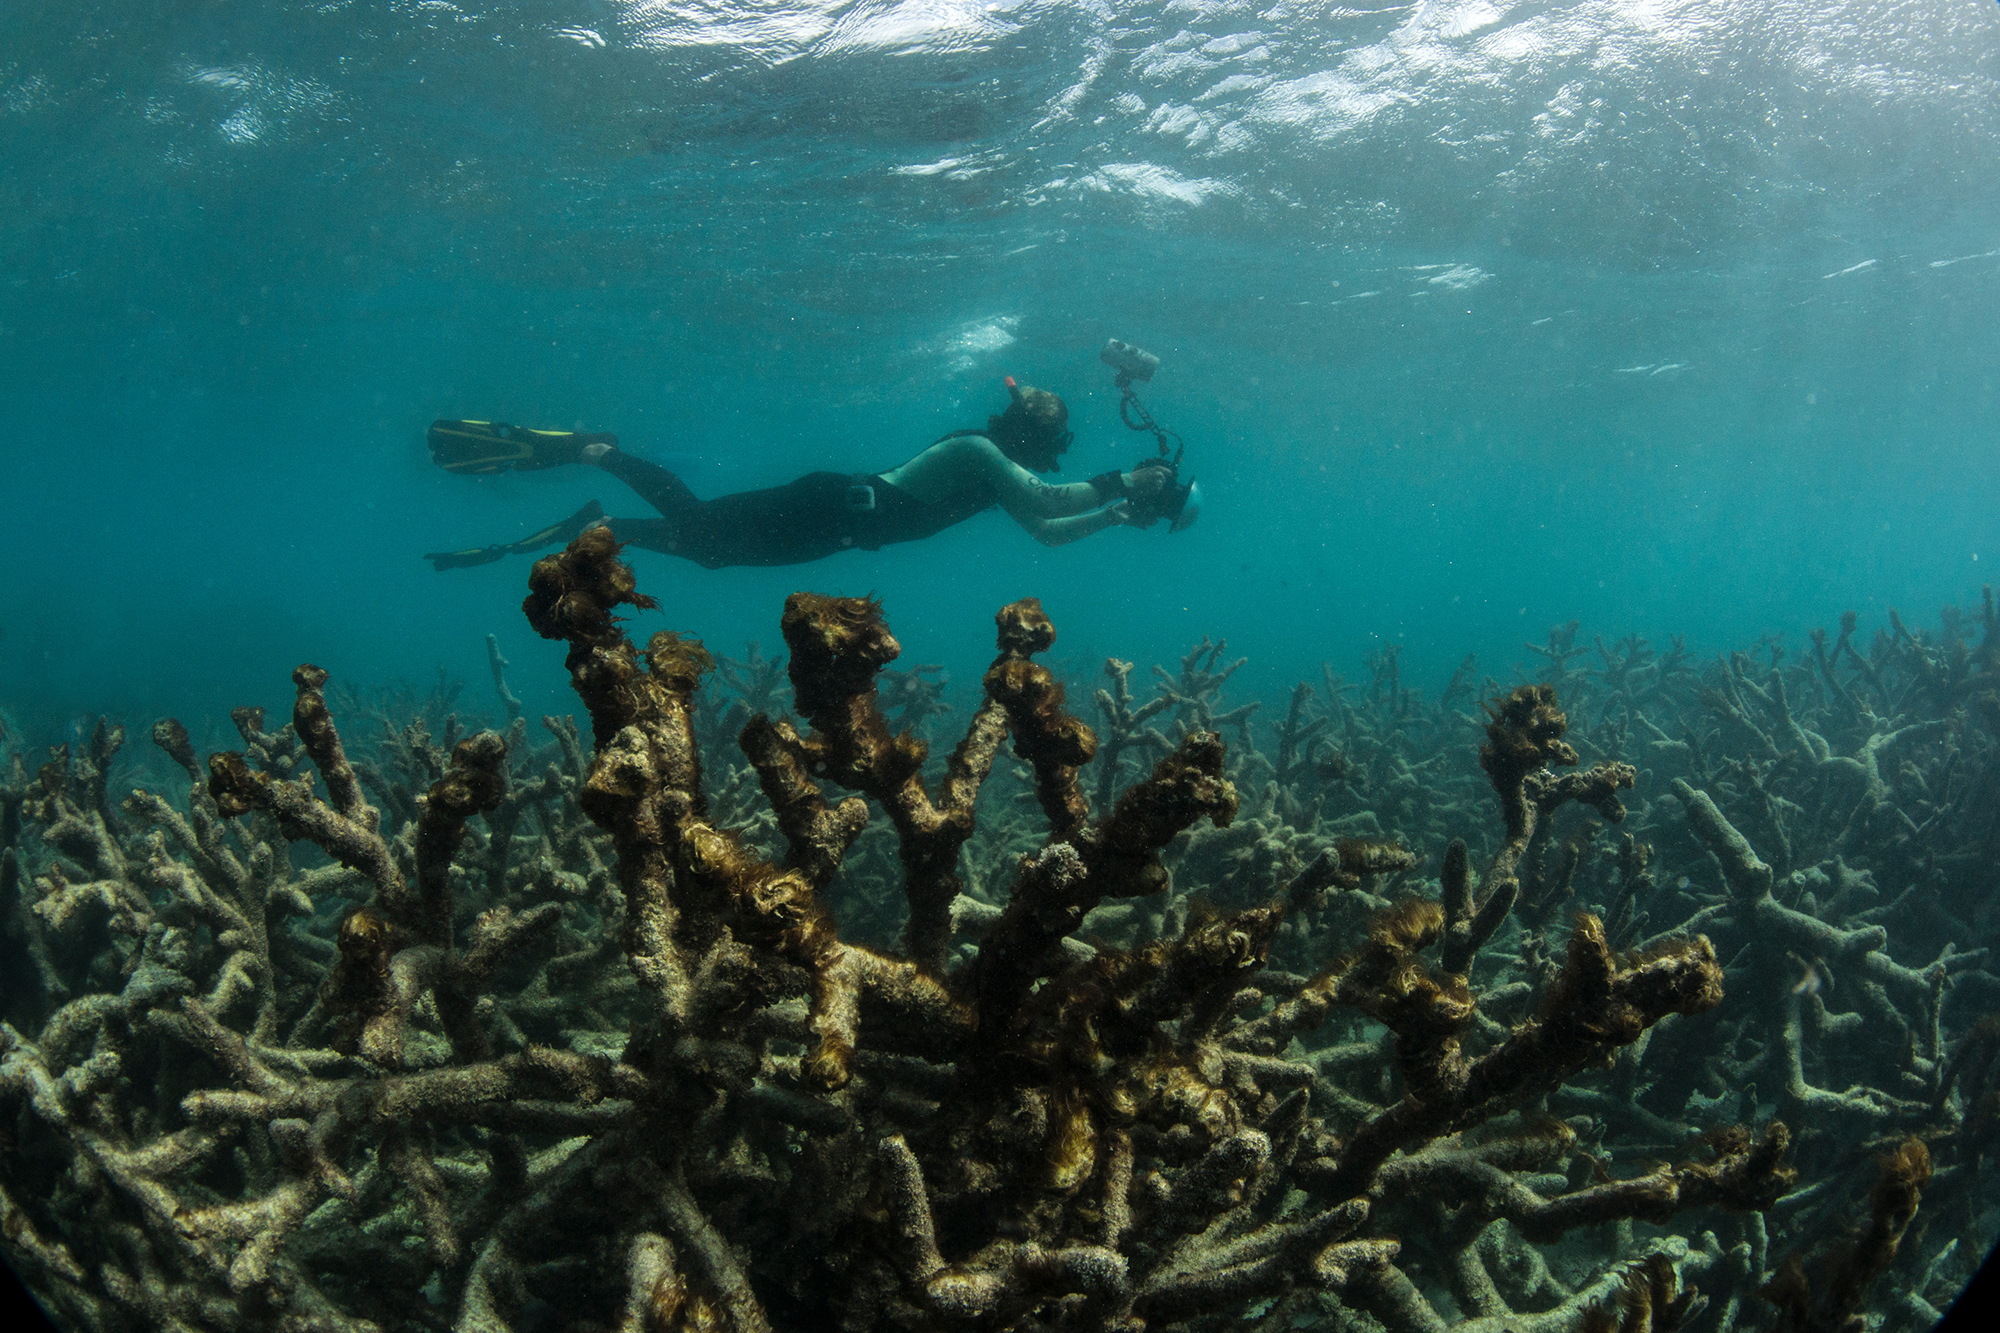 In 2016 the Great Barrier Reef lost 22% of its corals due to the bleaching event – this image captures the aftermath at Lizard Island.